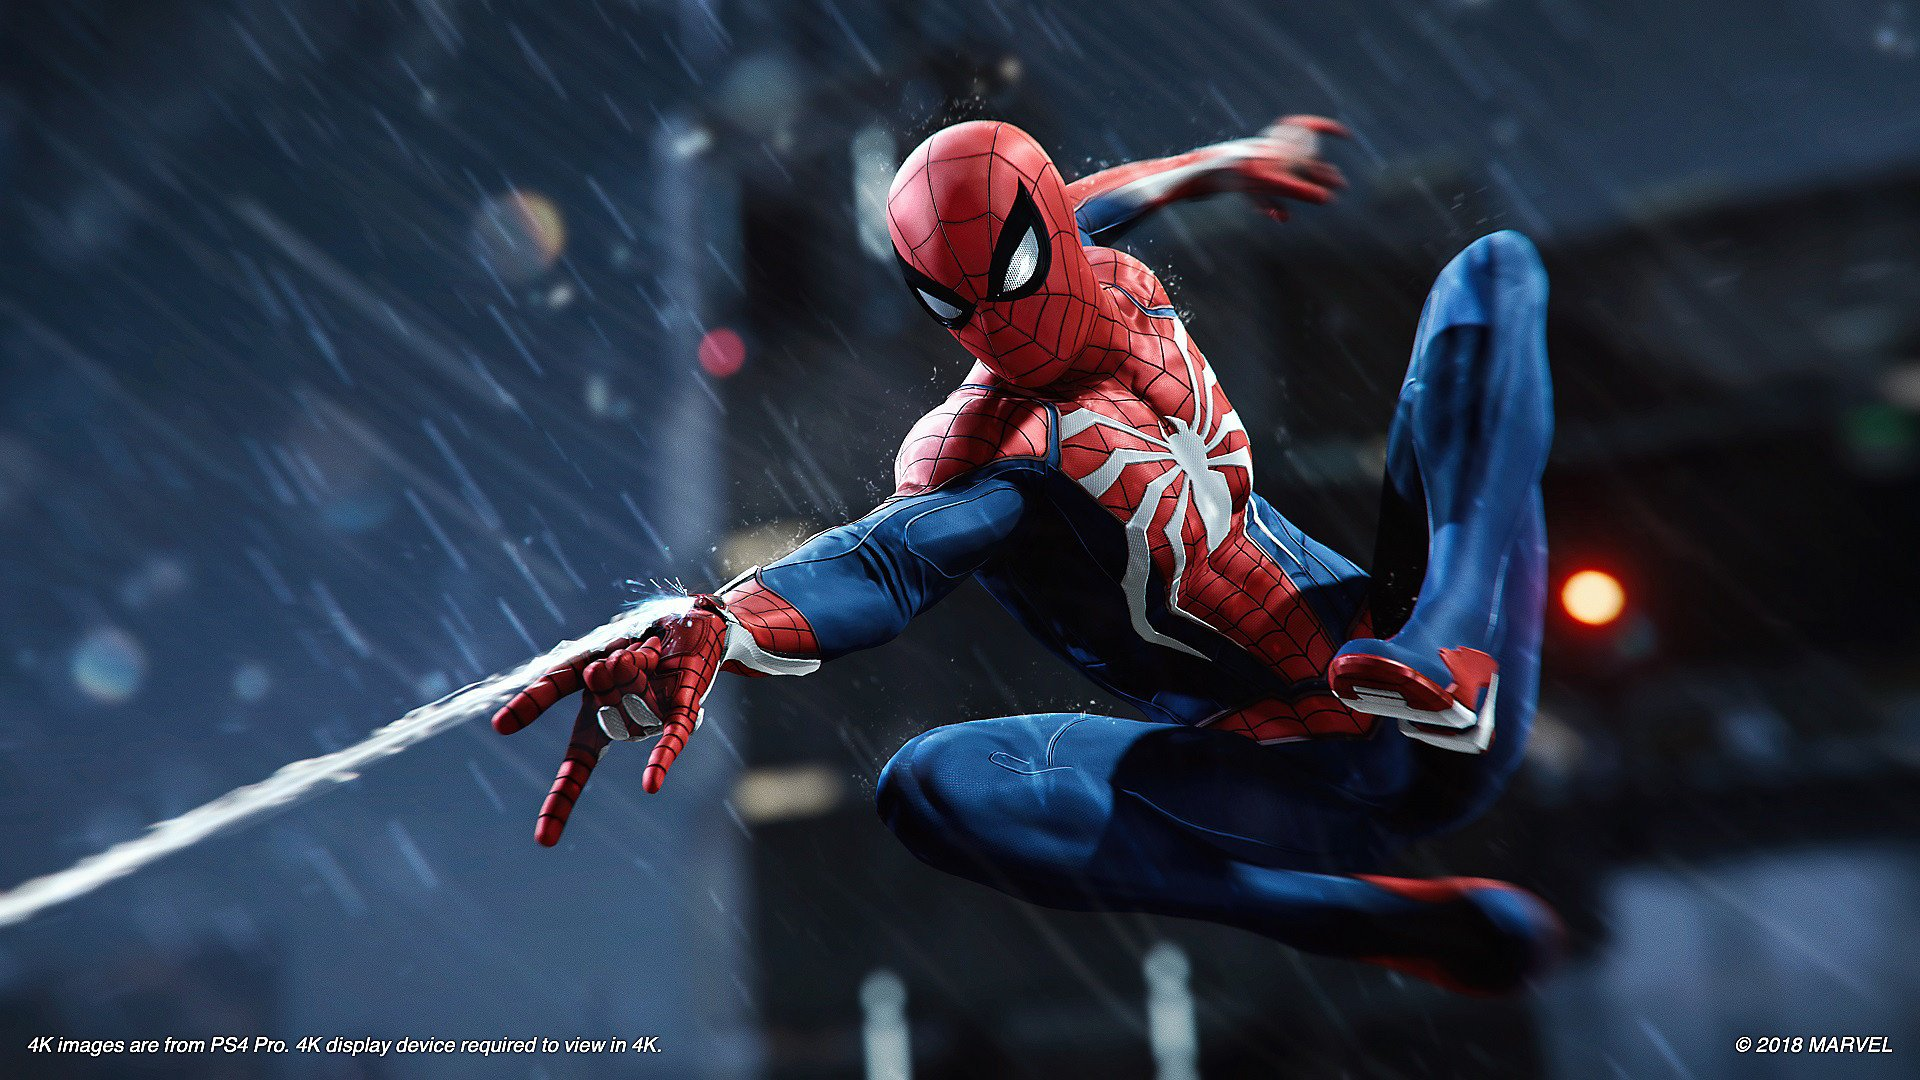 GDC keynotes, talks, sessions, badge pickup, price - Marvel's Spider-man in flight